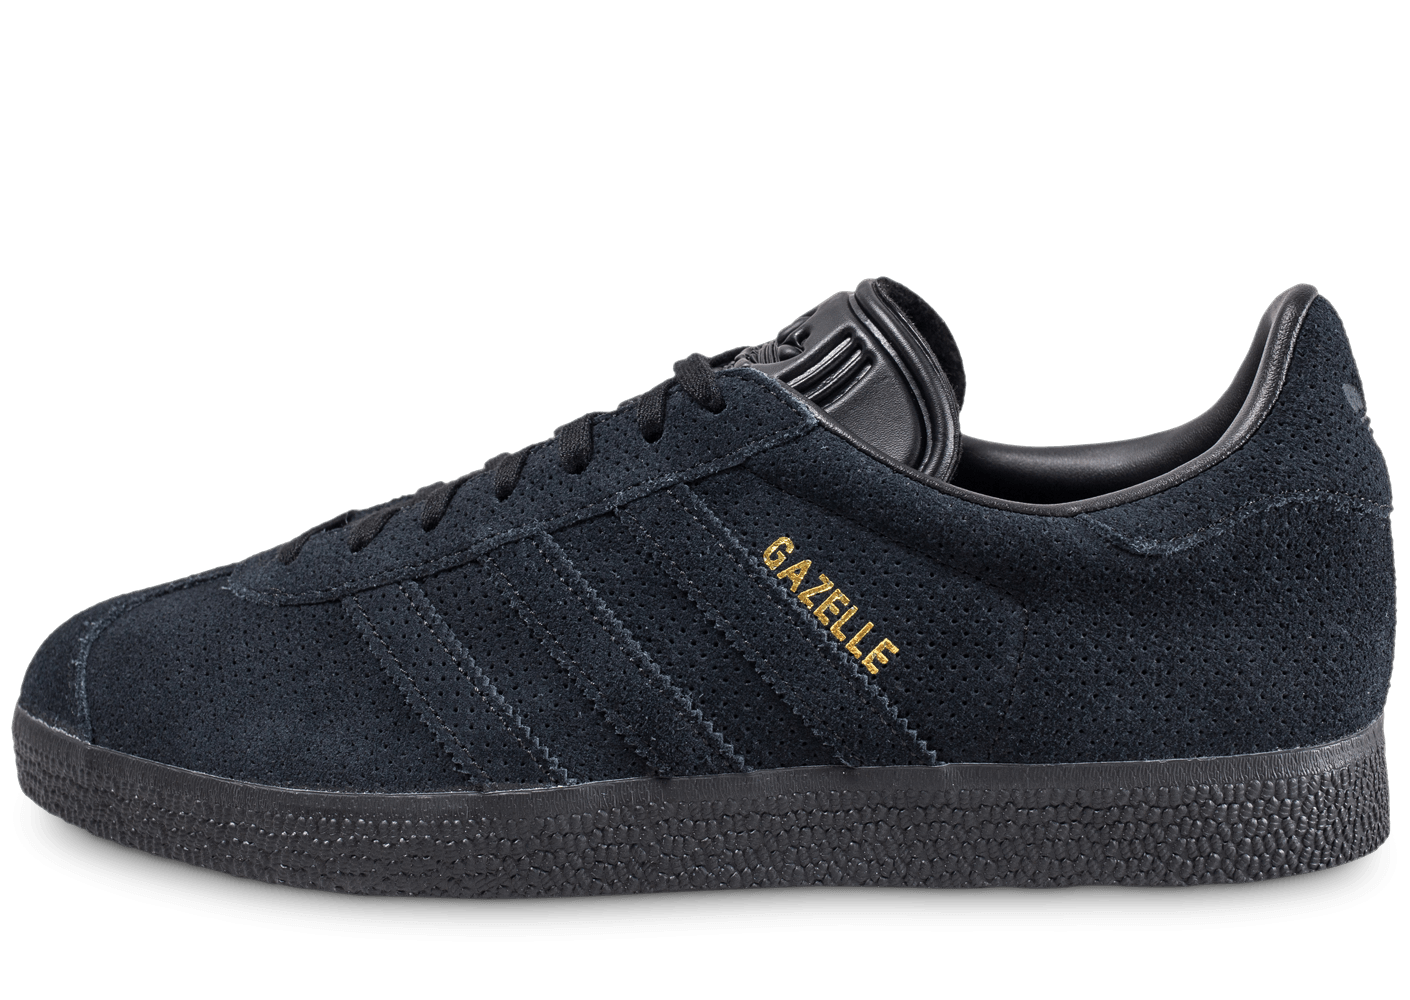 adidas gazelle noir or